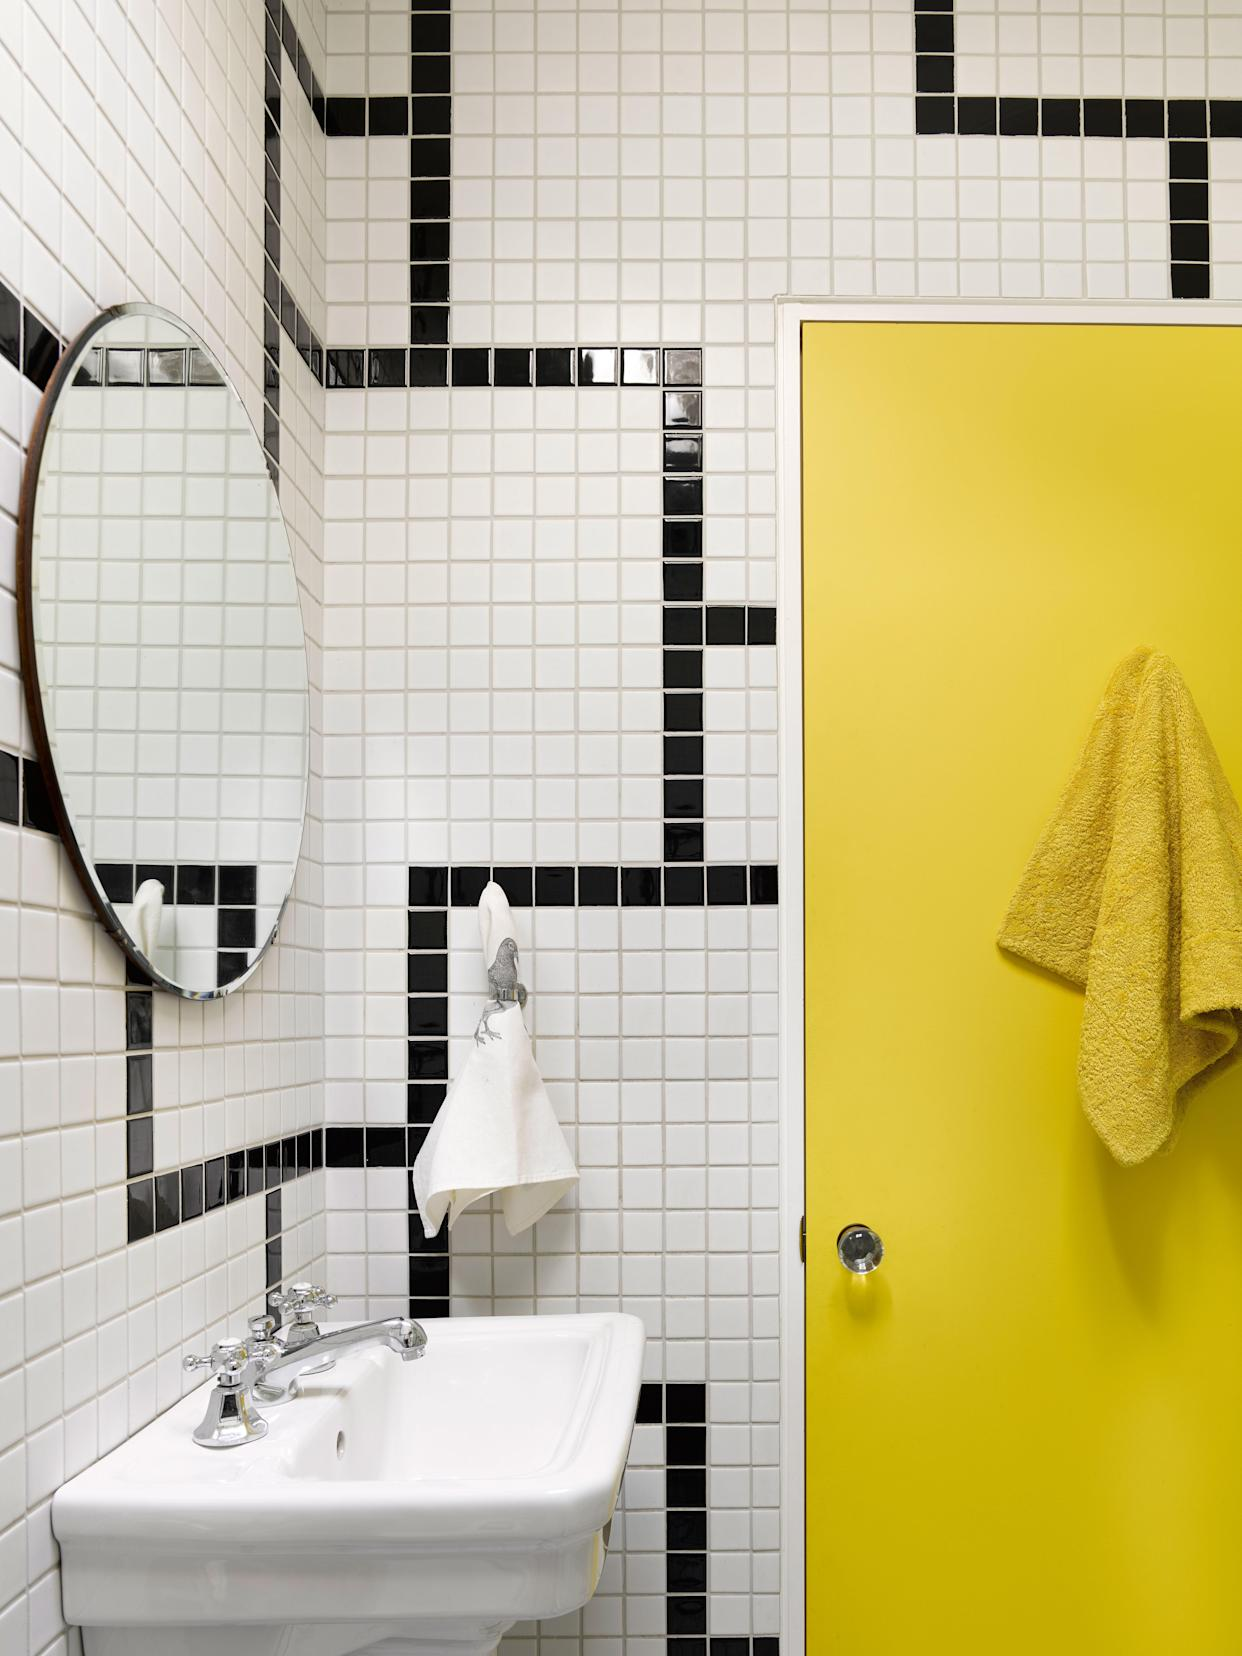 A Bathroom Tile Design Idea for Pattern-Lovers on a Budget